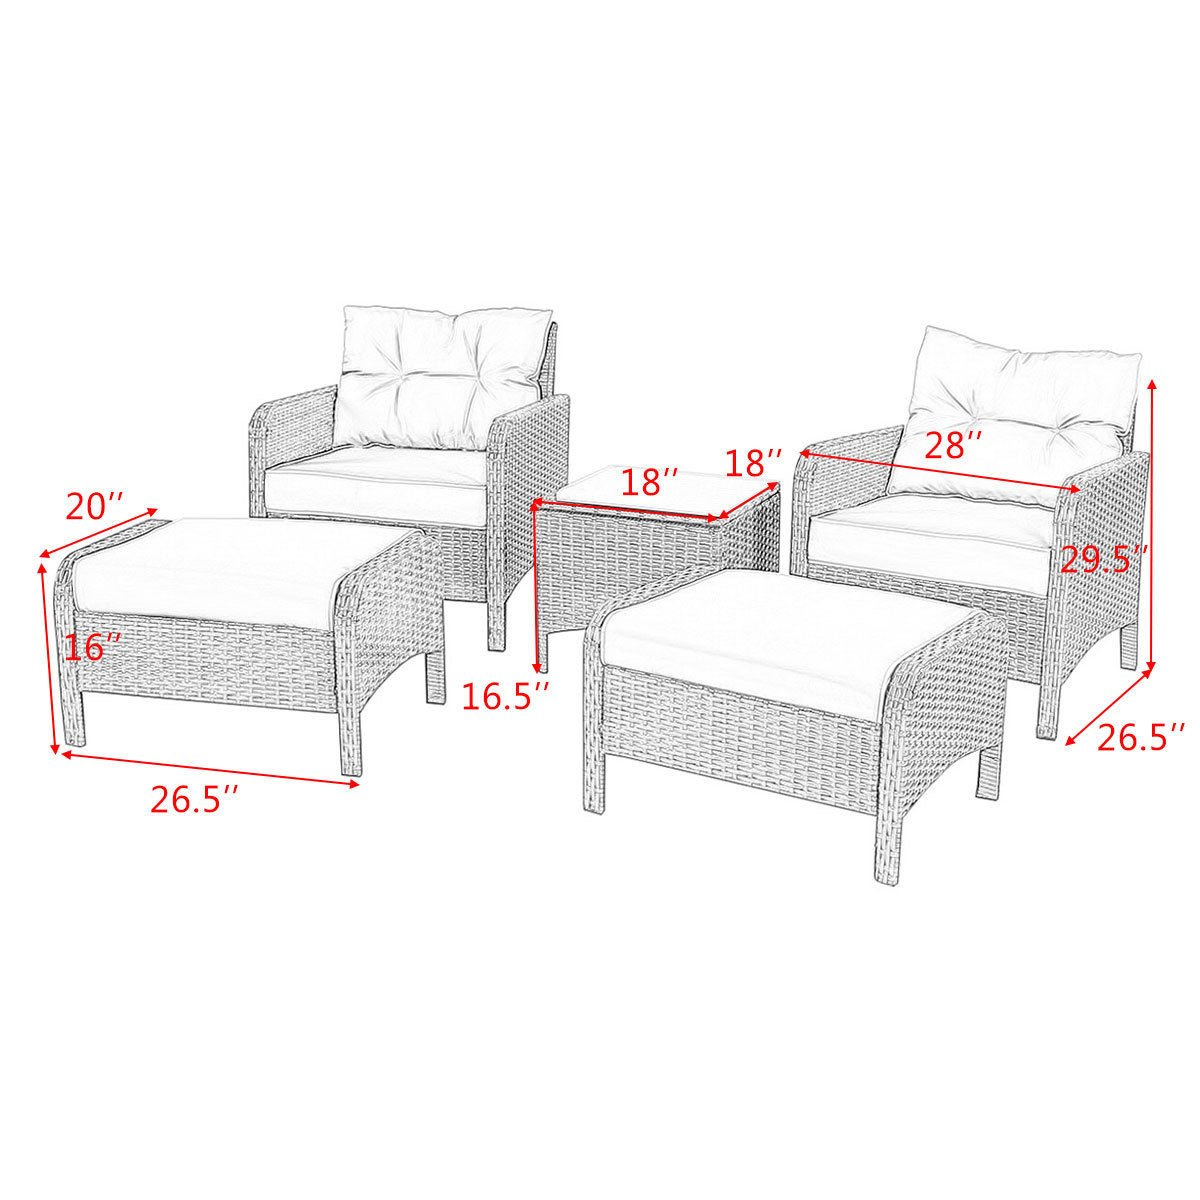 Tangkula Wicker Furniture Set 5 Pieces PE Wicker Rattan Outdoor All Weather Cushioned Sofas and Ottoman Set Lawn Pool Balcony Conversation Set Chat Set by Tangkula (Image #3)